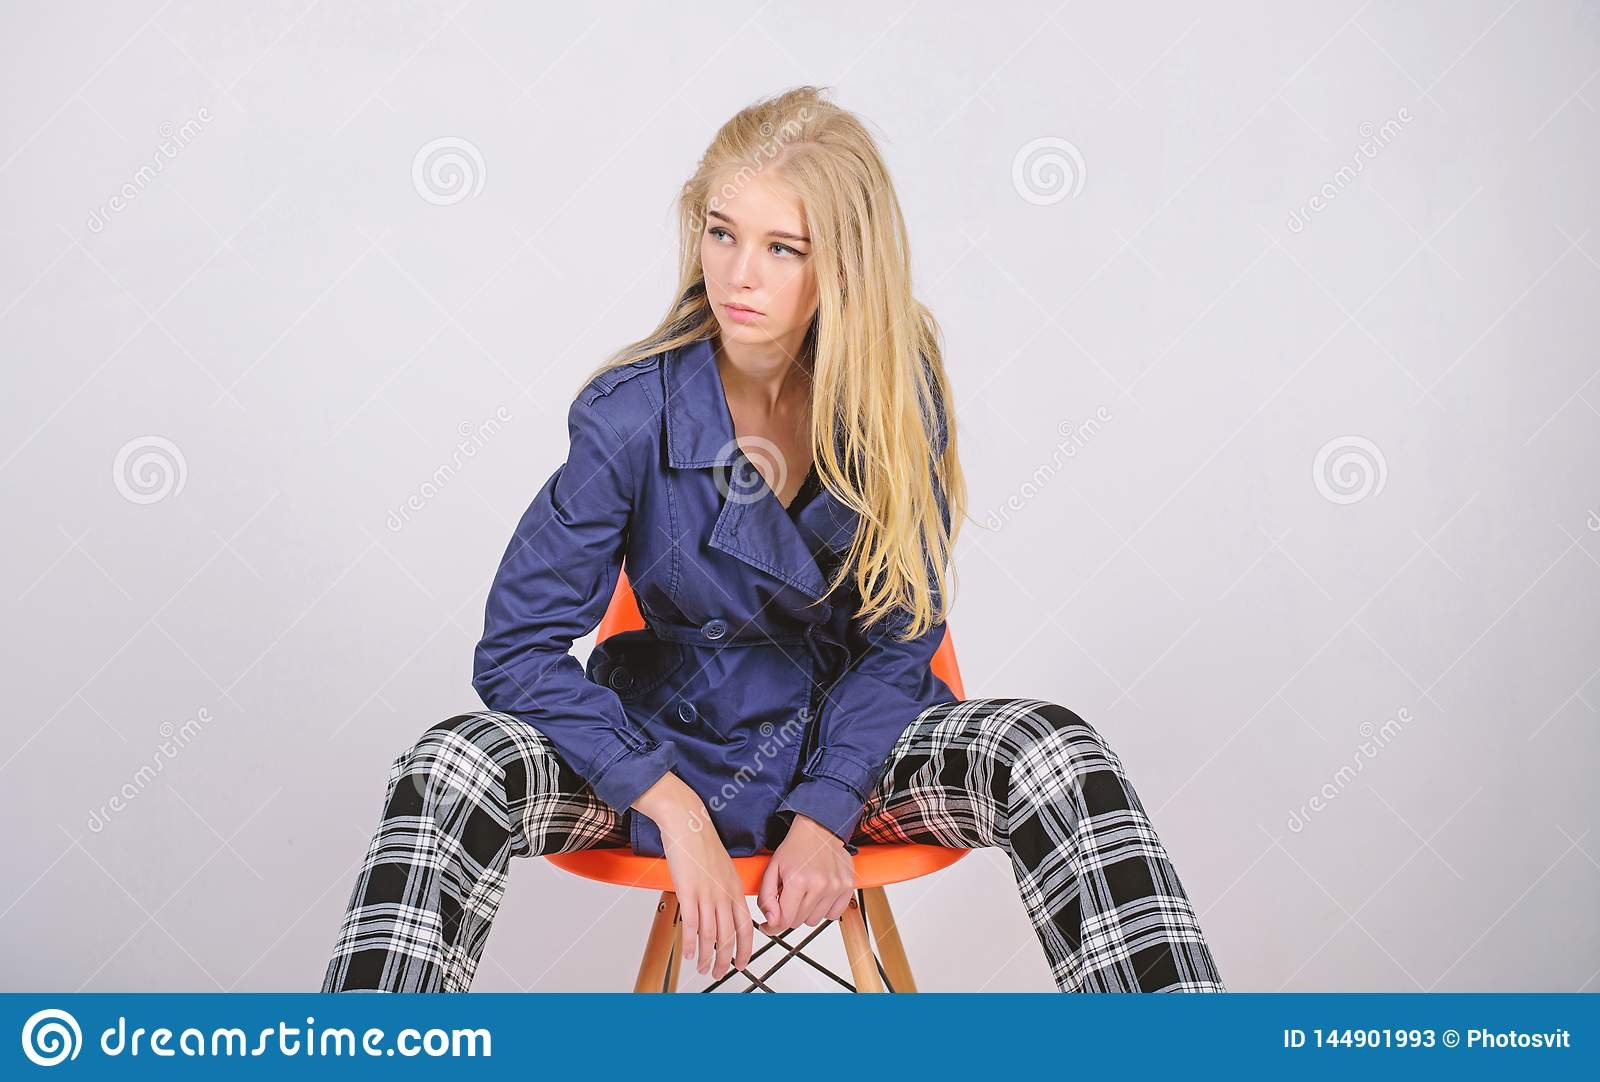 Woman makeup face posing coat at modern chair. Fashionable coat. Clothes and accessory. Mixing styles. Girl fashion